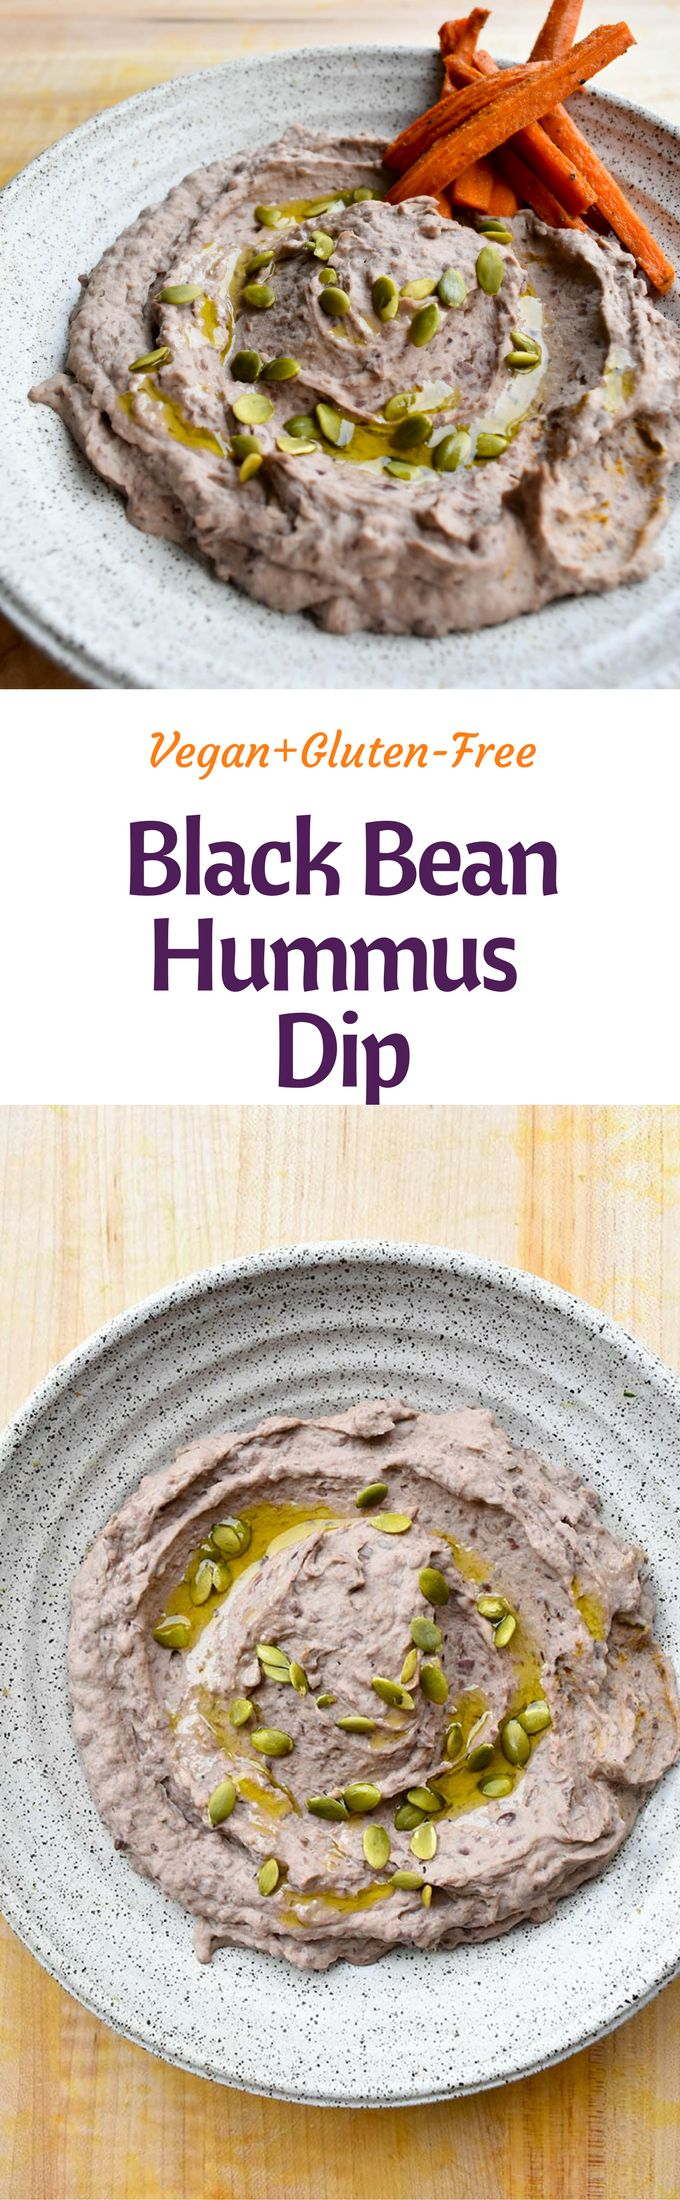 Sides don't get any better than this easy Black Bean Dip. It doubles as a side dish or a hummus and makes anything instantly more delicious. It's totally healthy, plant-based, gluten-free, and takes 5 minutes to make. I literally eat this with everything and am not embarrassed to say it! It's an amazing refried bean replacement for tacos or burritos and is fantastic in Buddha or macro bowls.